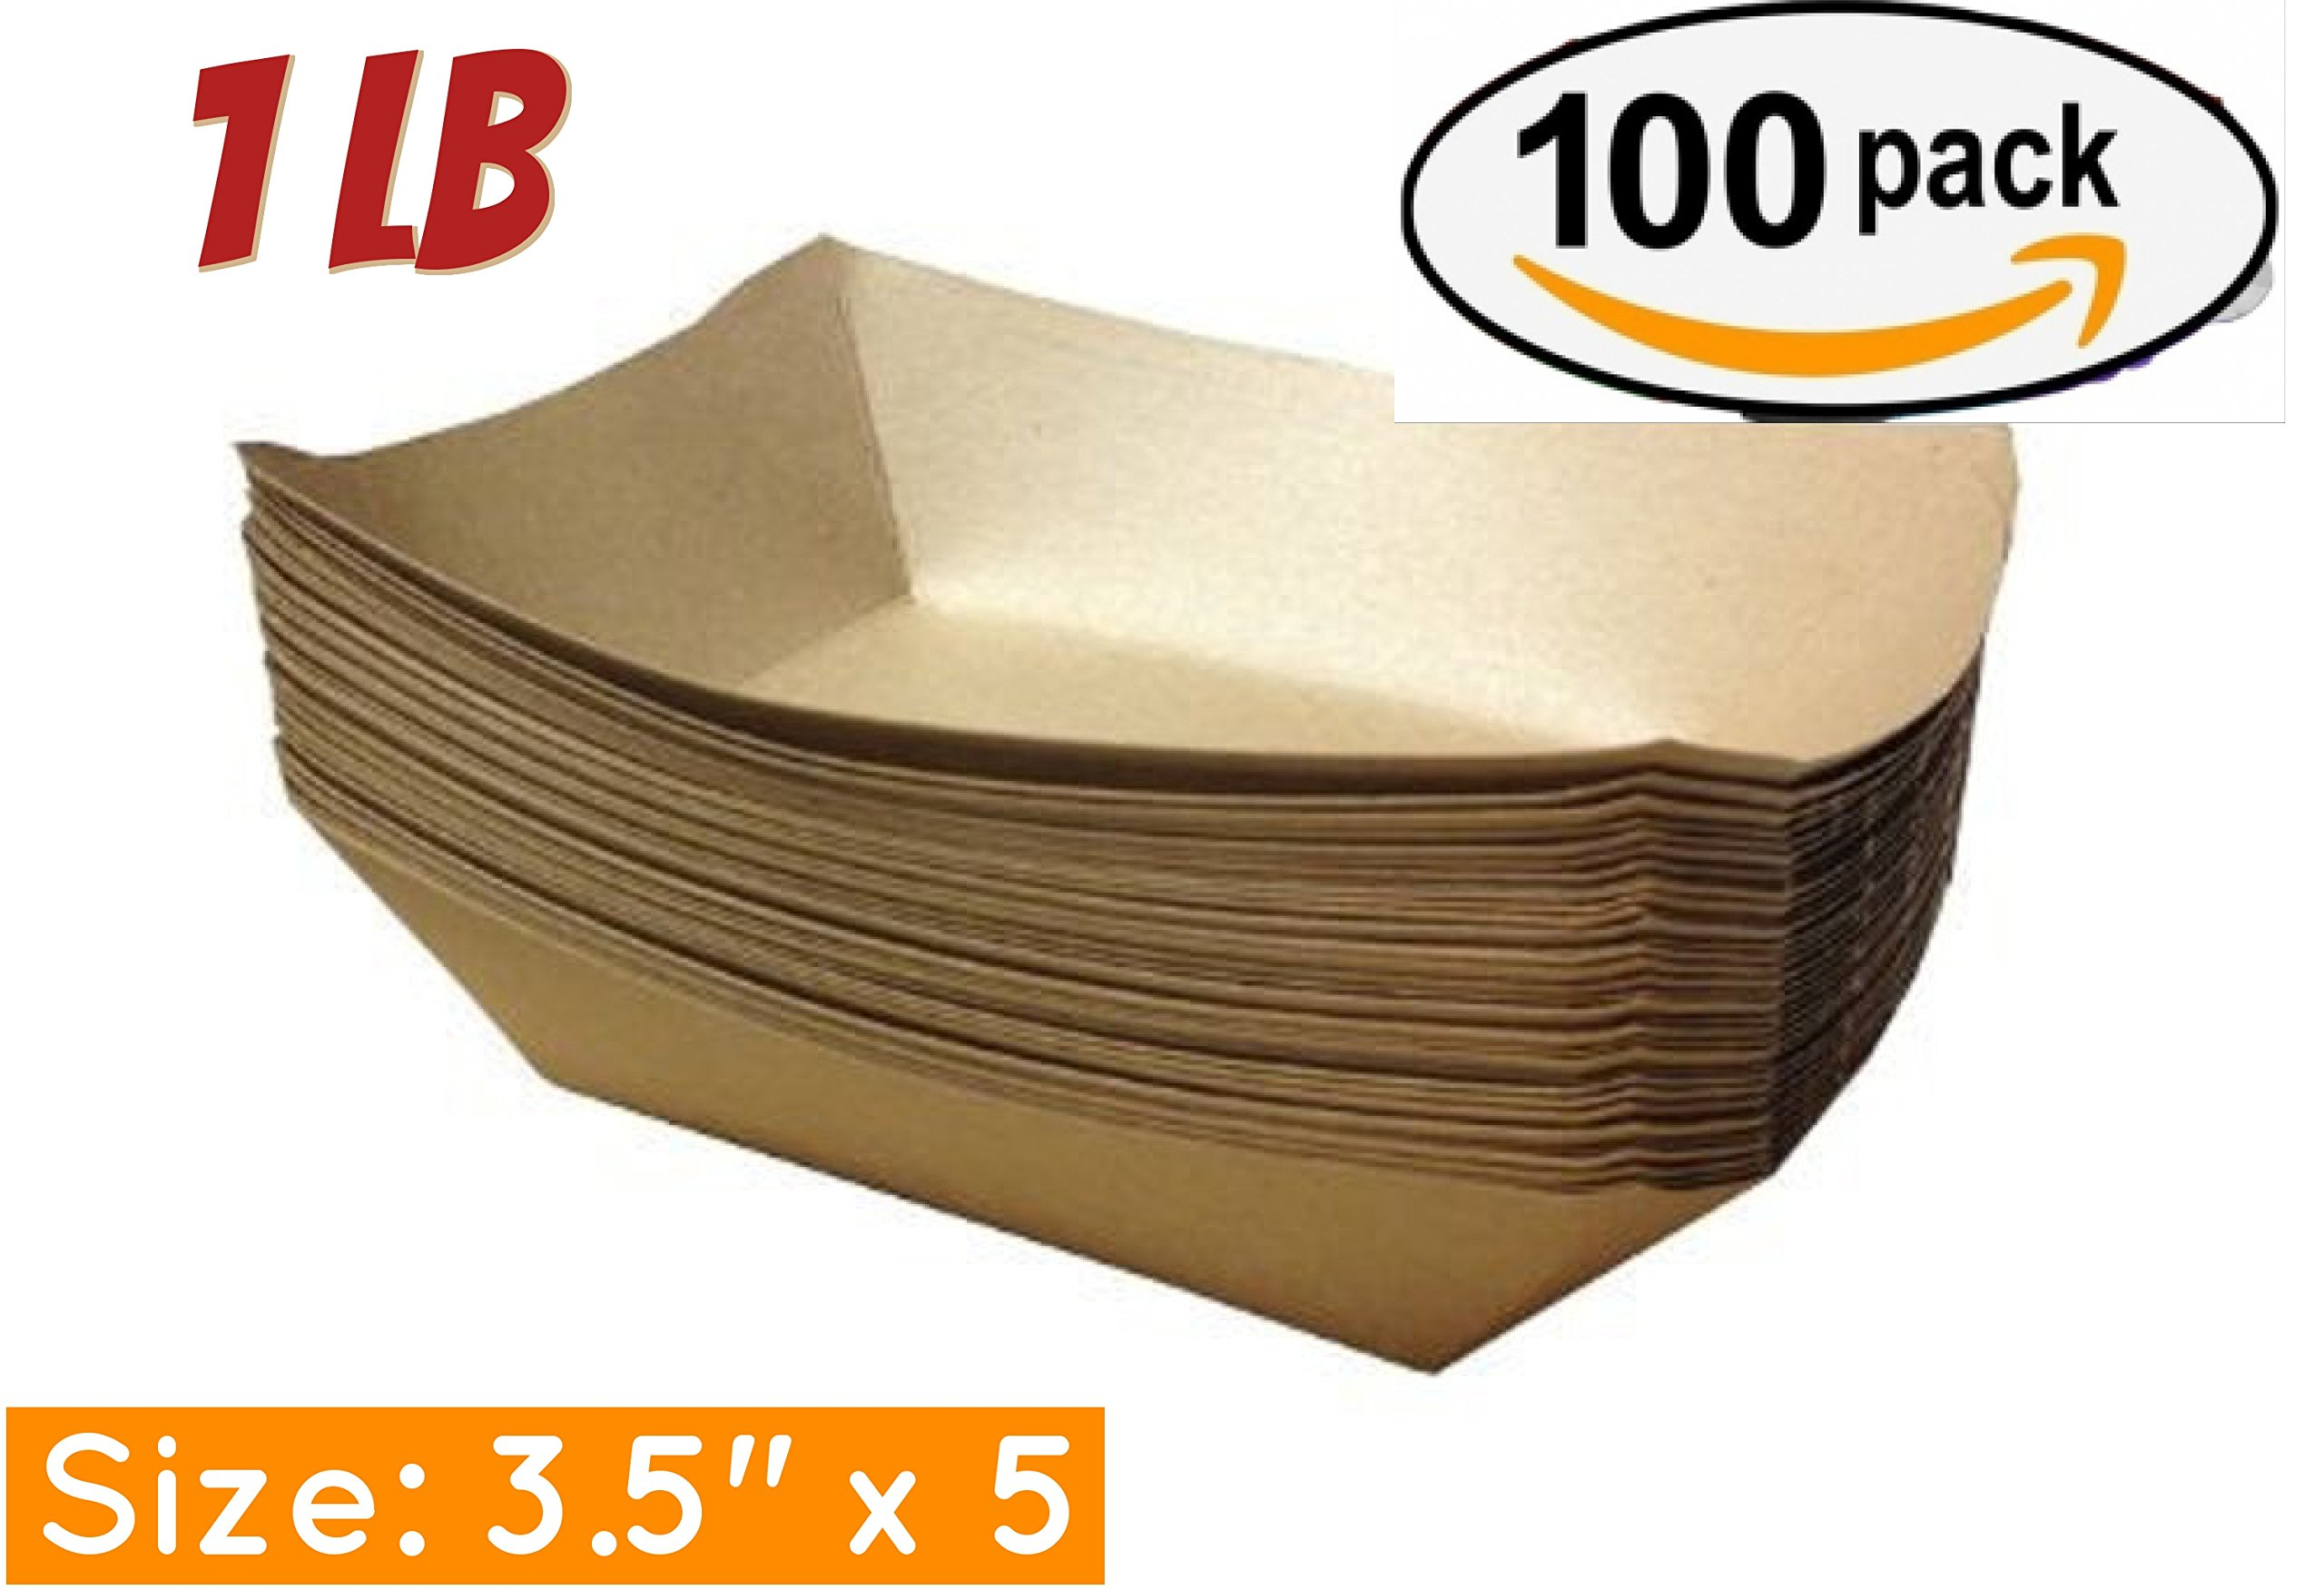 Brown Kraft Paper Food Trays- Set of 100 Sturdy and Recyclable Great for Parties, Takeout, Home Use, Outdoor (100, 3.5'' x 5'', 1 lb)